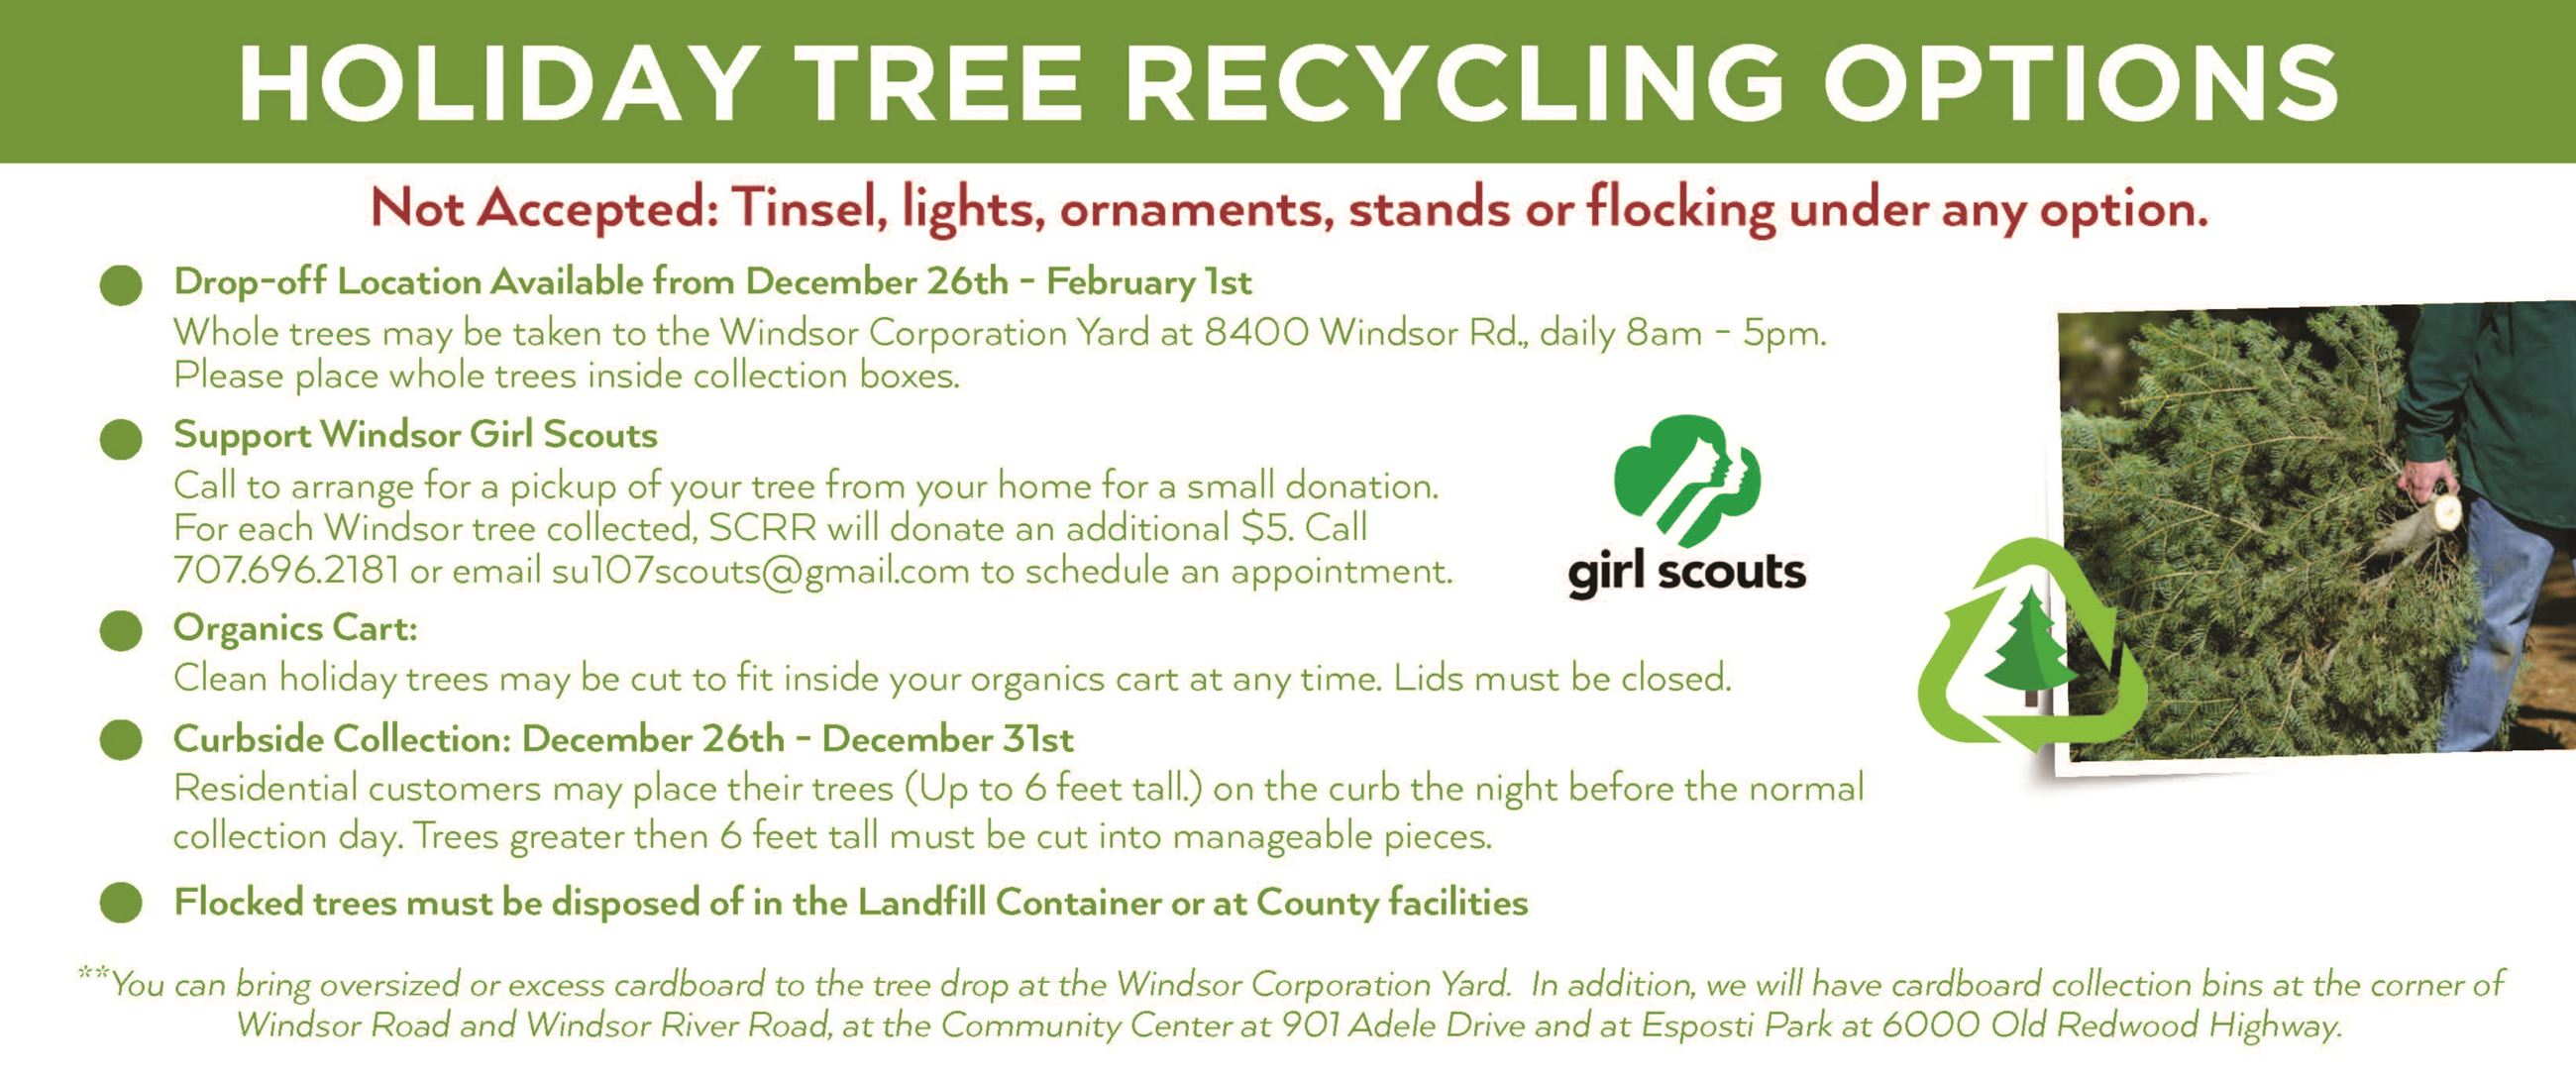 holiday schedule 2018_holiday tree recycling